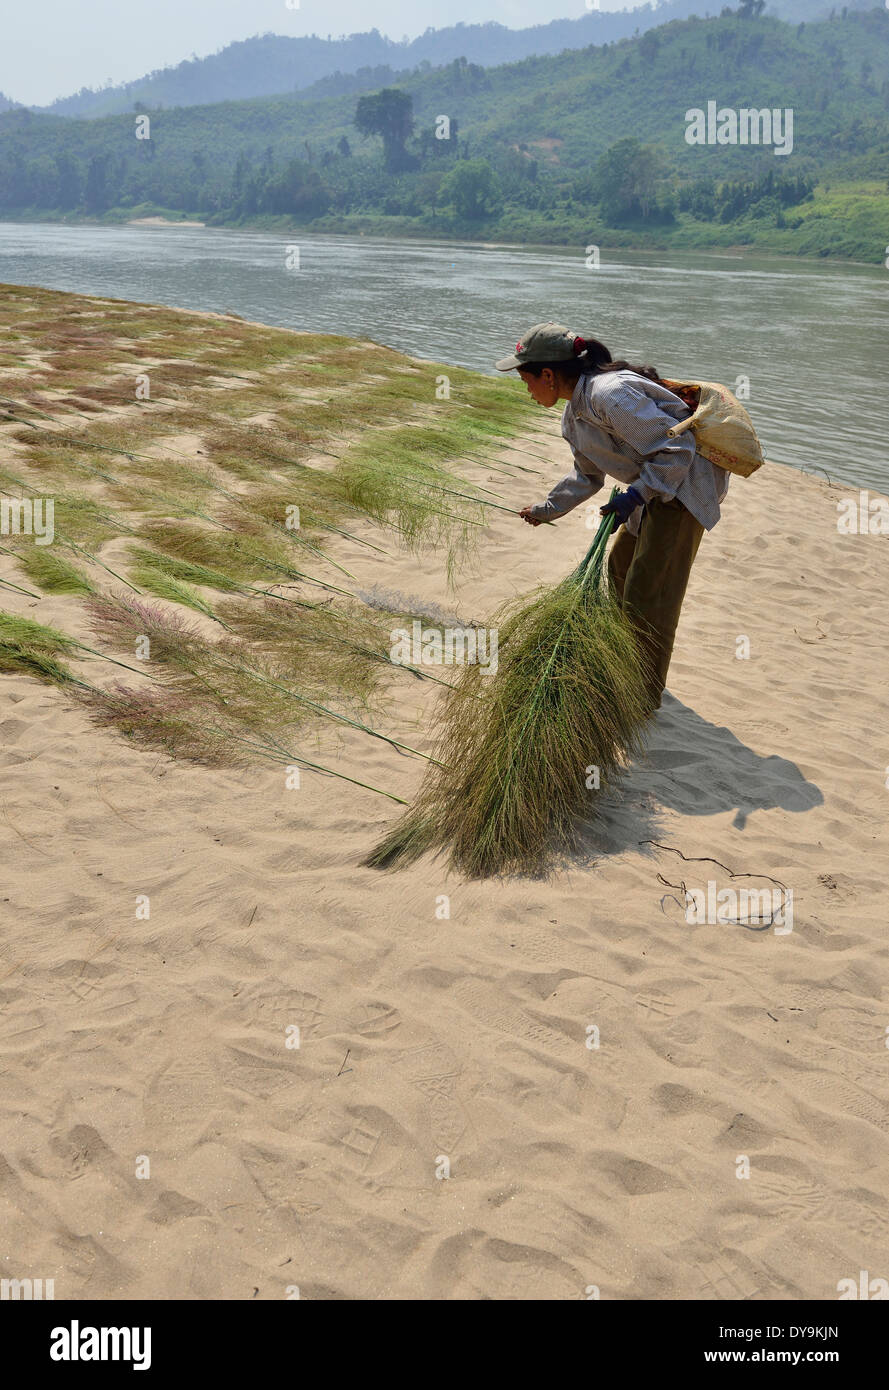 Woman drying  bushes for brush- broom making , in the sun on the sandy river banks of the Mekong River . - Stock Image